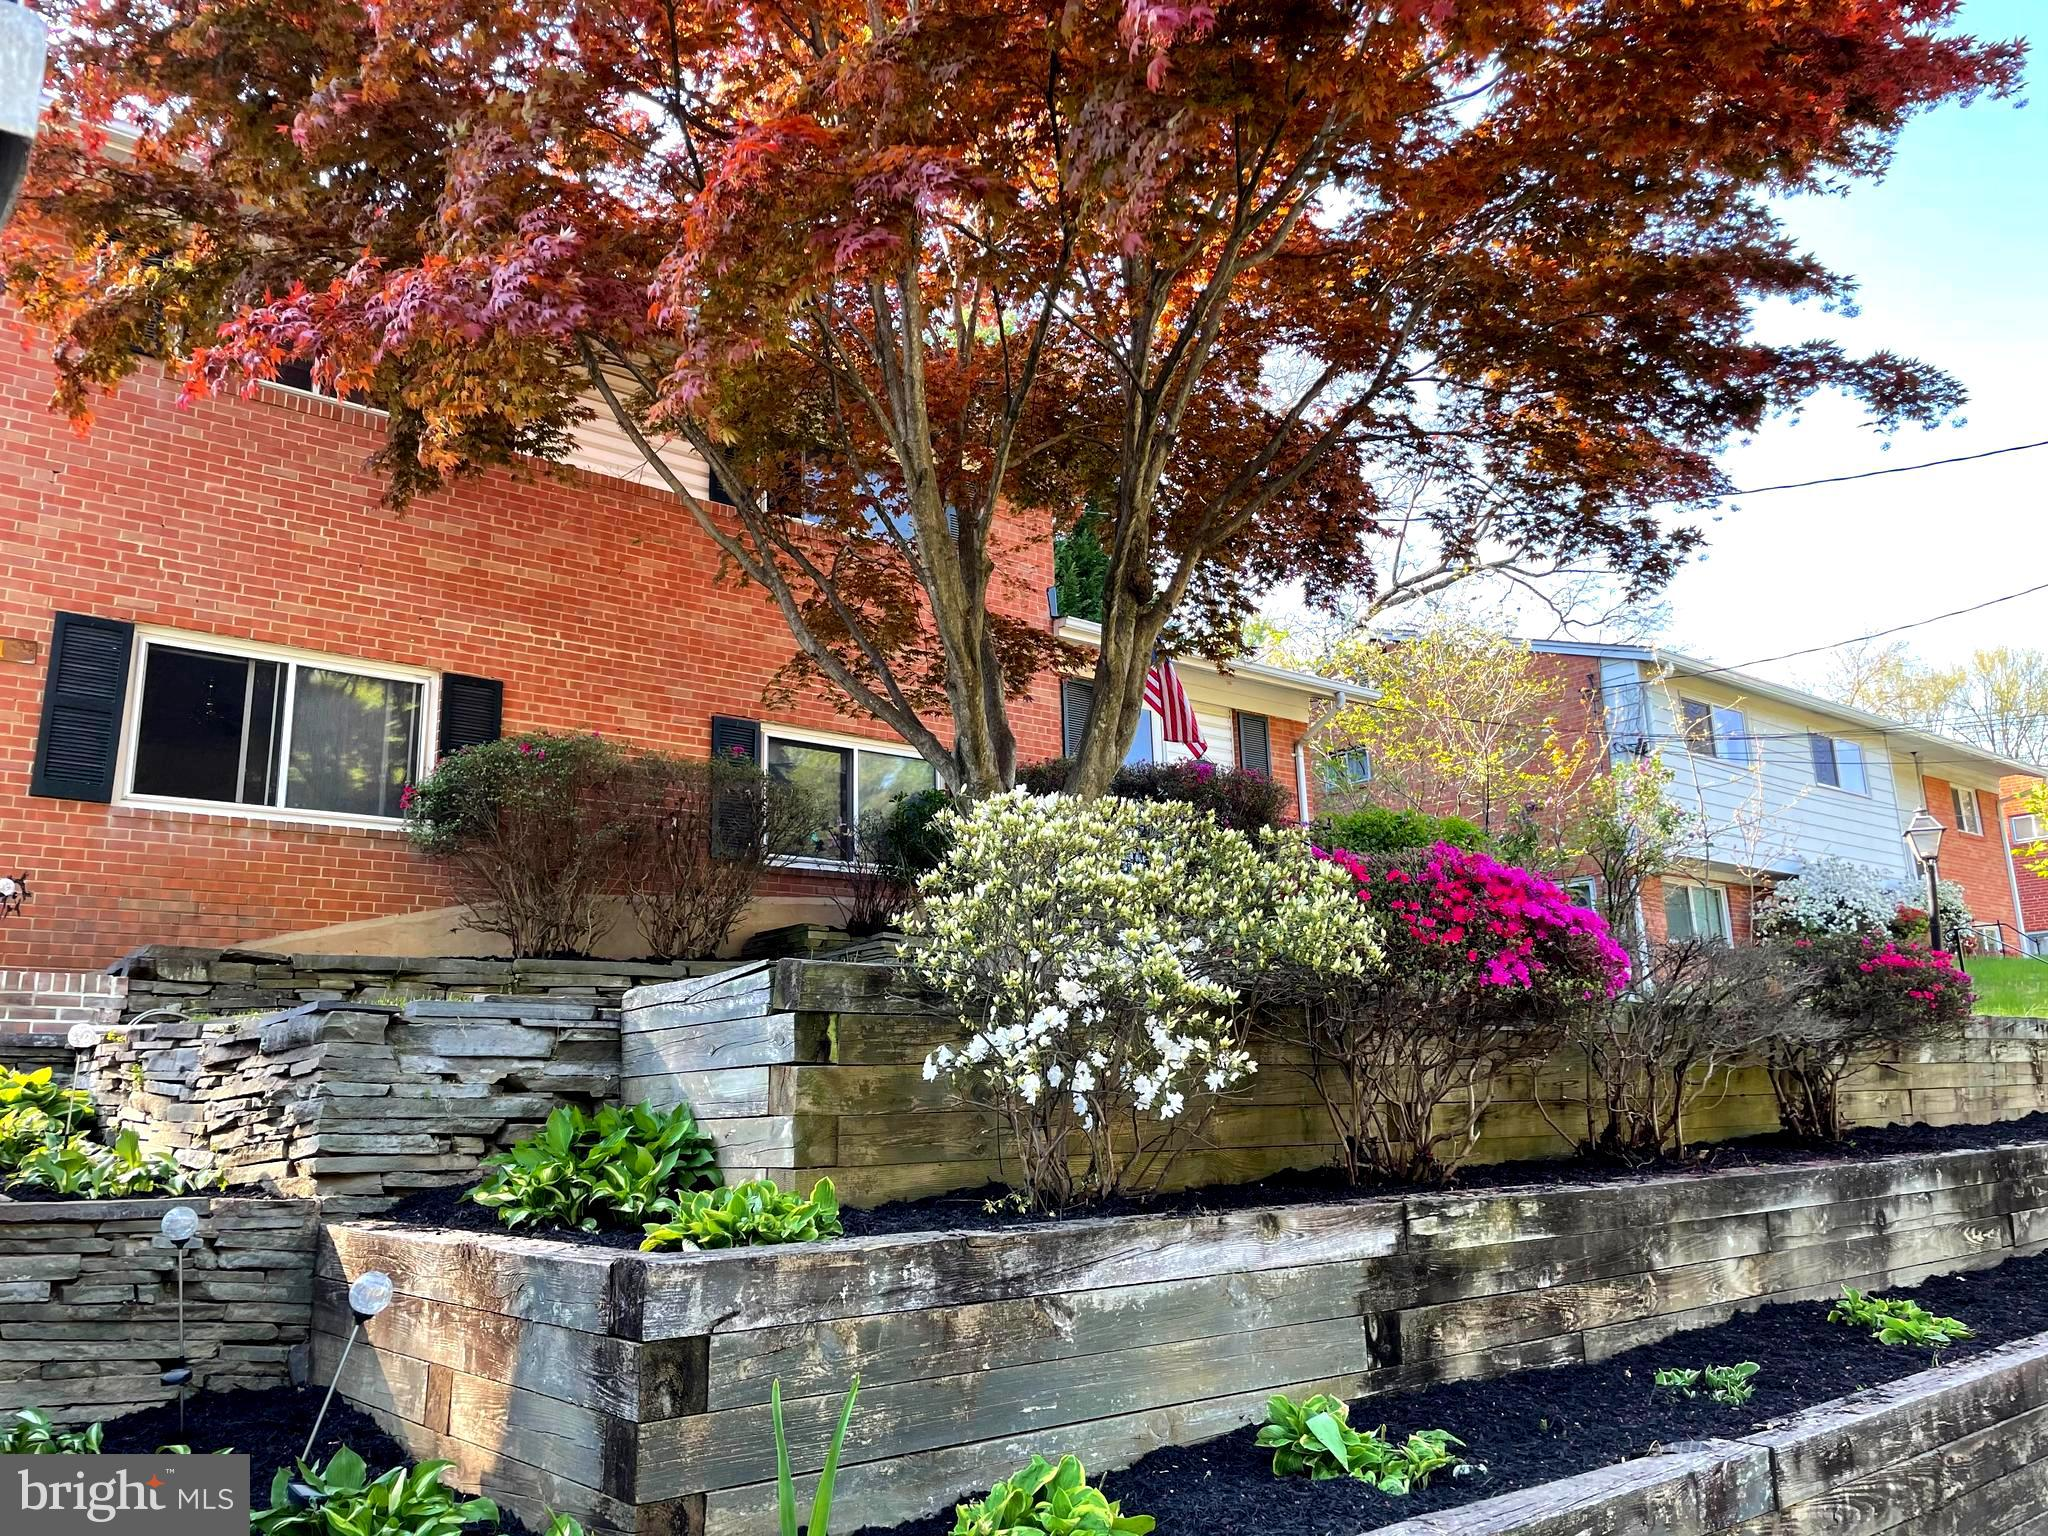 9711 HEDIN DRIVE, SILVER SPRING, Maryland 20903, 4 Bedrooms Bedrooms, ,3 BathroomsBathrooms,Single Family,For Sale,9711 HEDIN DRIVE,MDMC752724